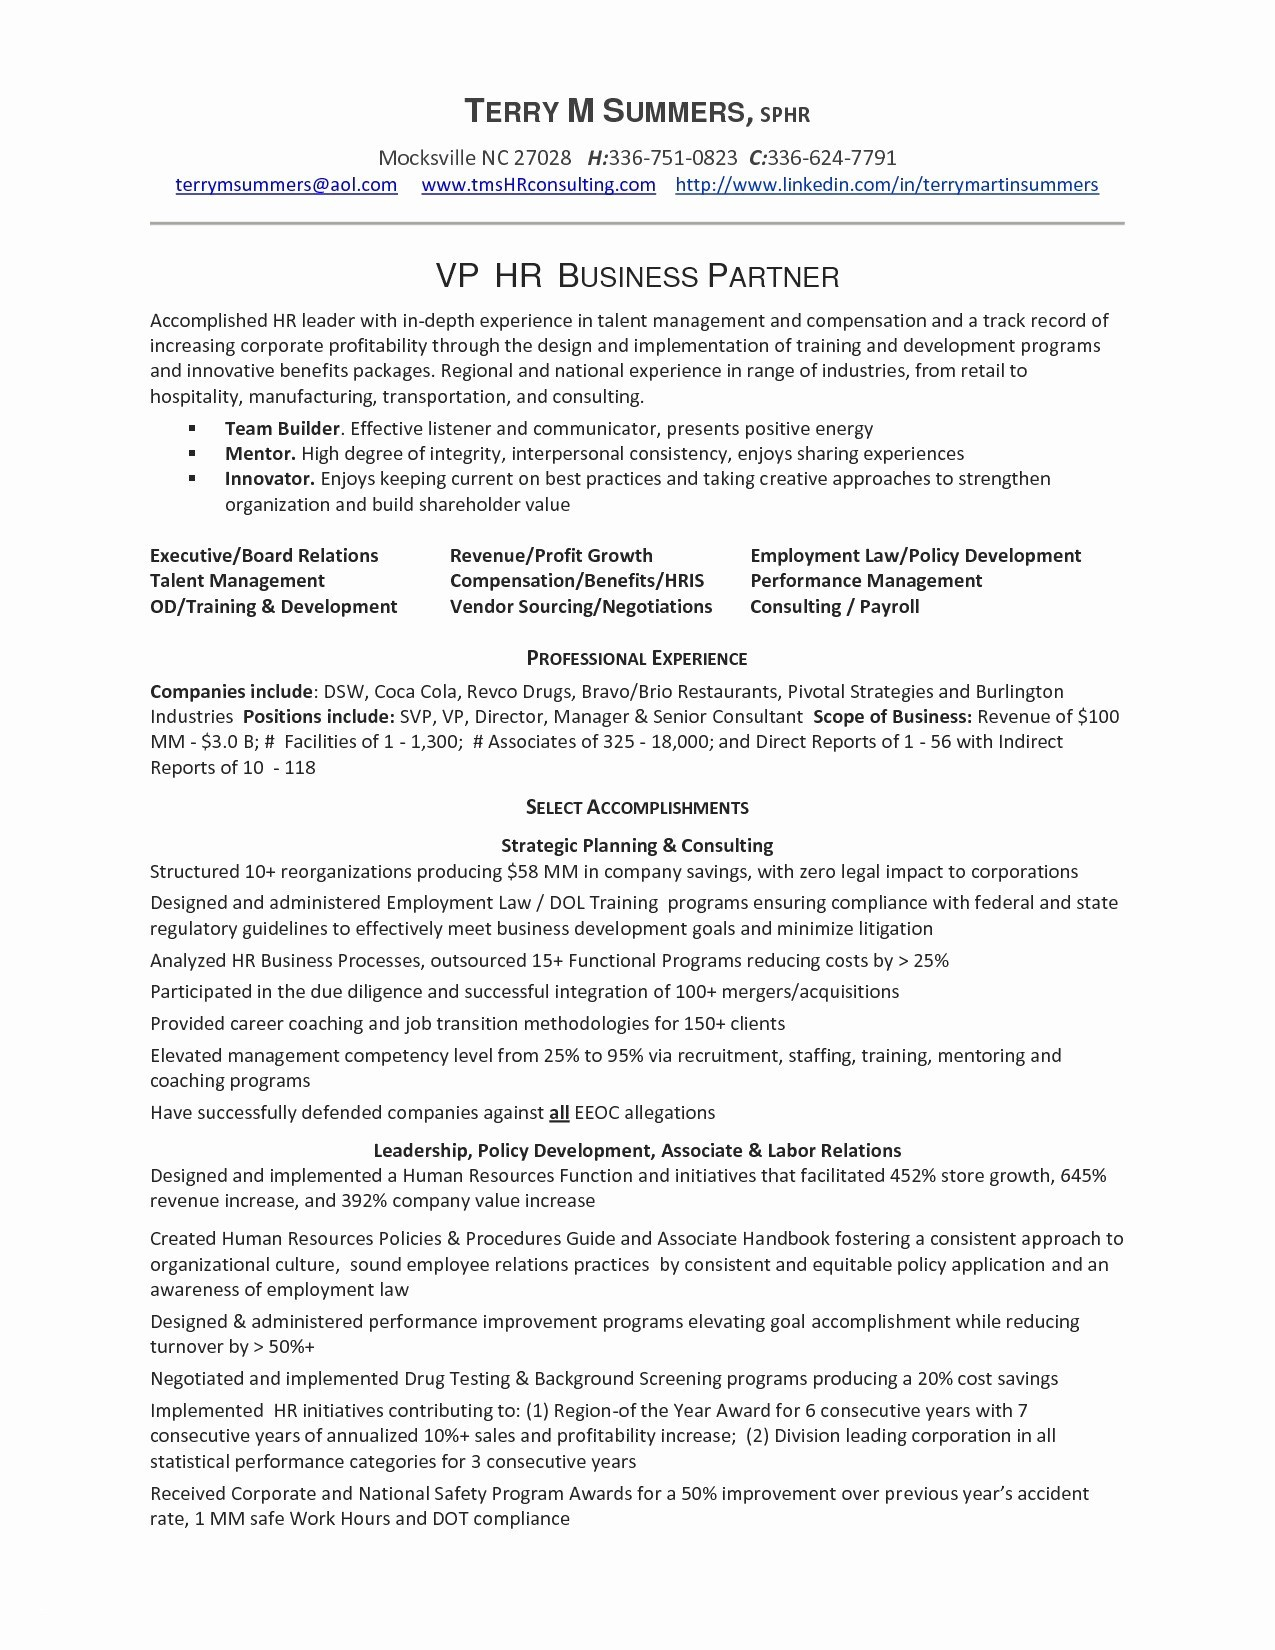 Resume Templates for Medical Field - Medical Field Resume Templates